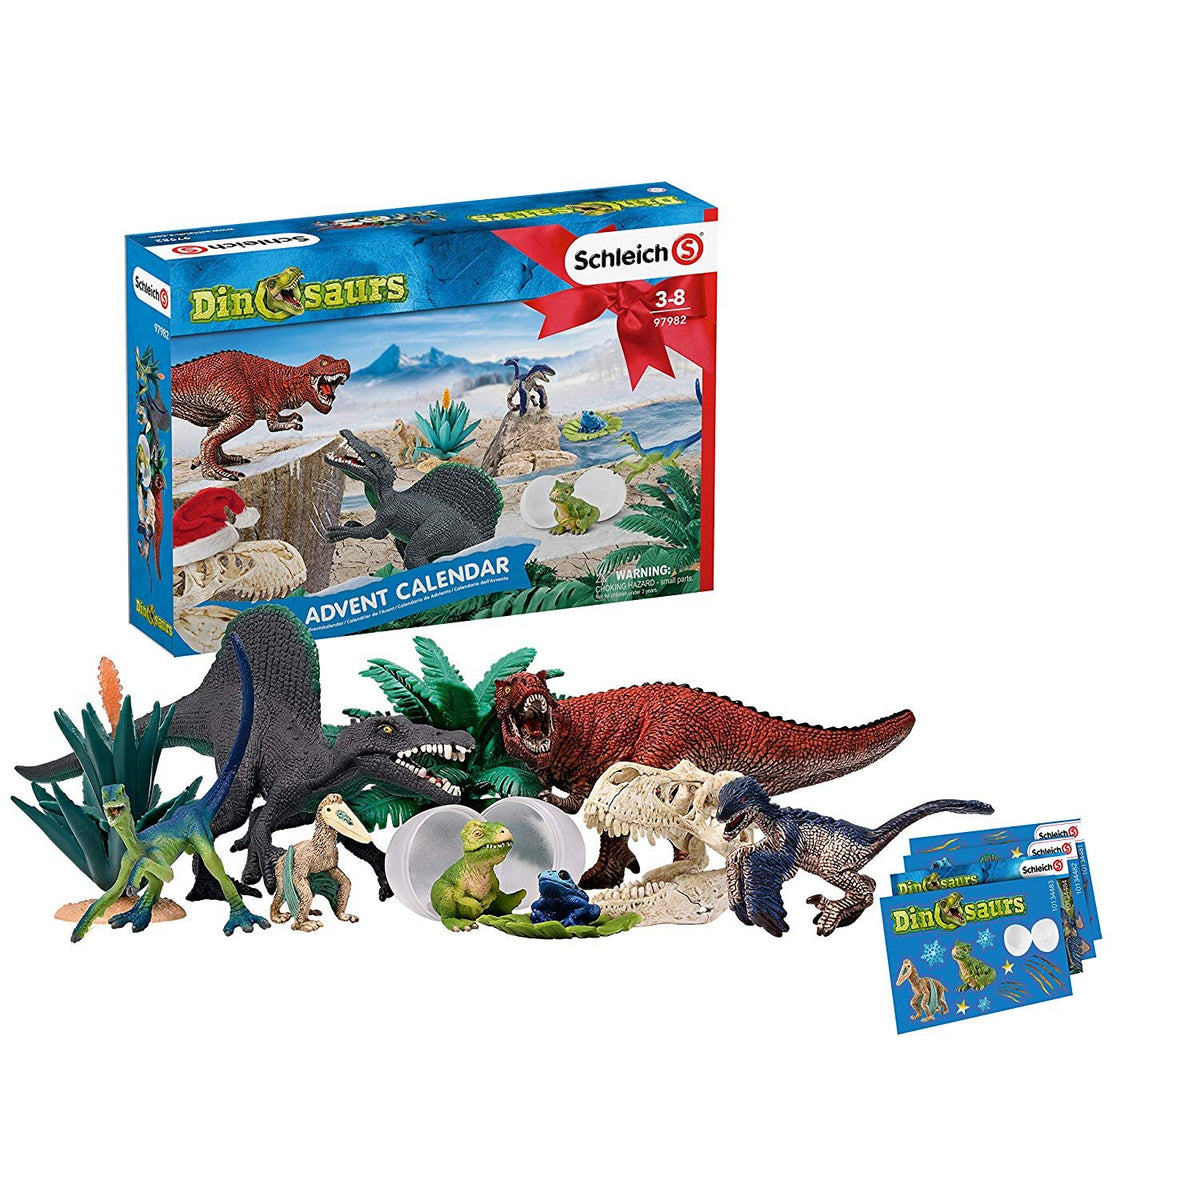 SCHLEICH DINOSAUR ADVENT CALENDAR